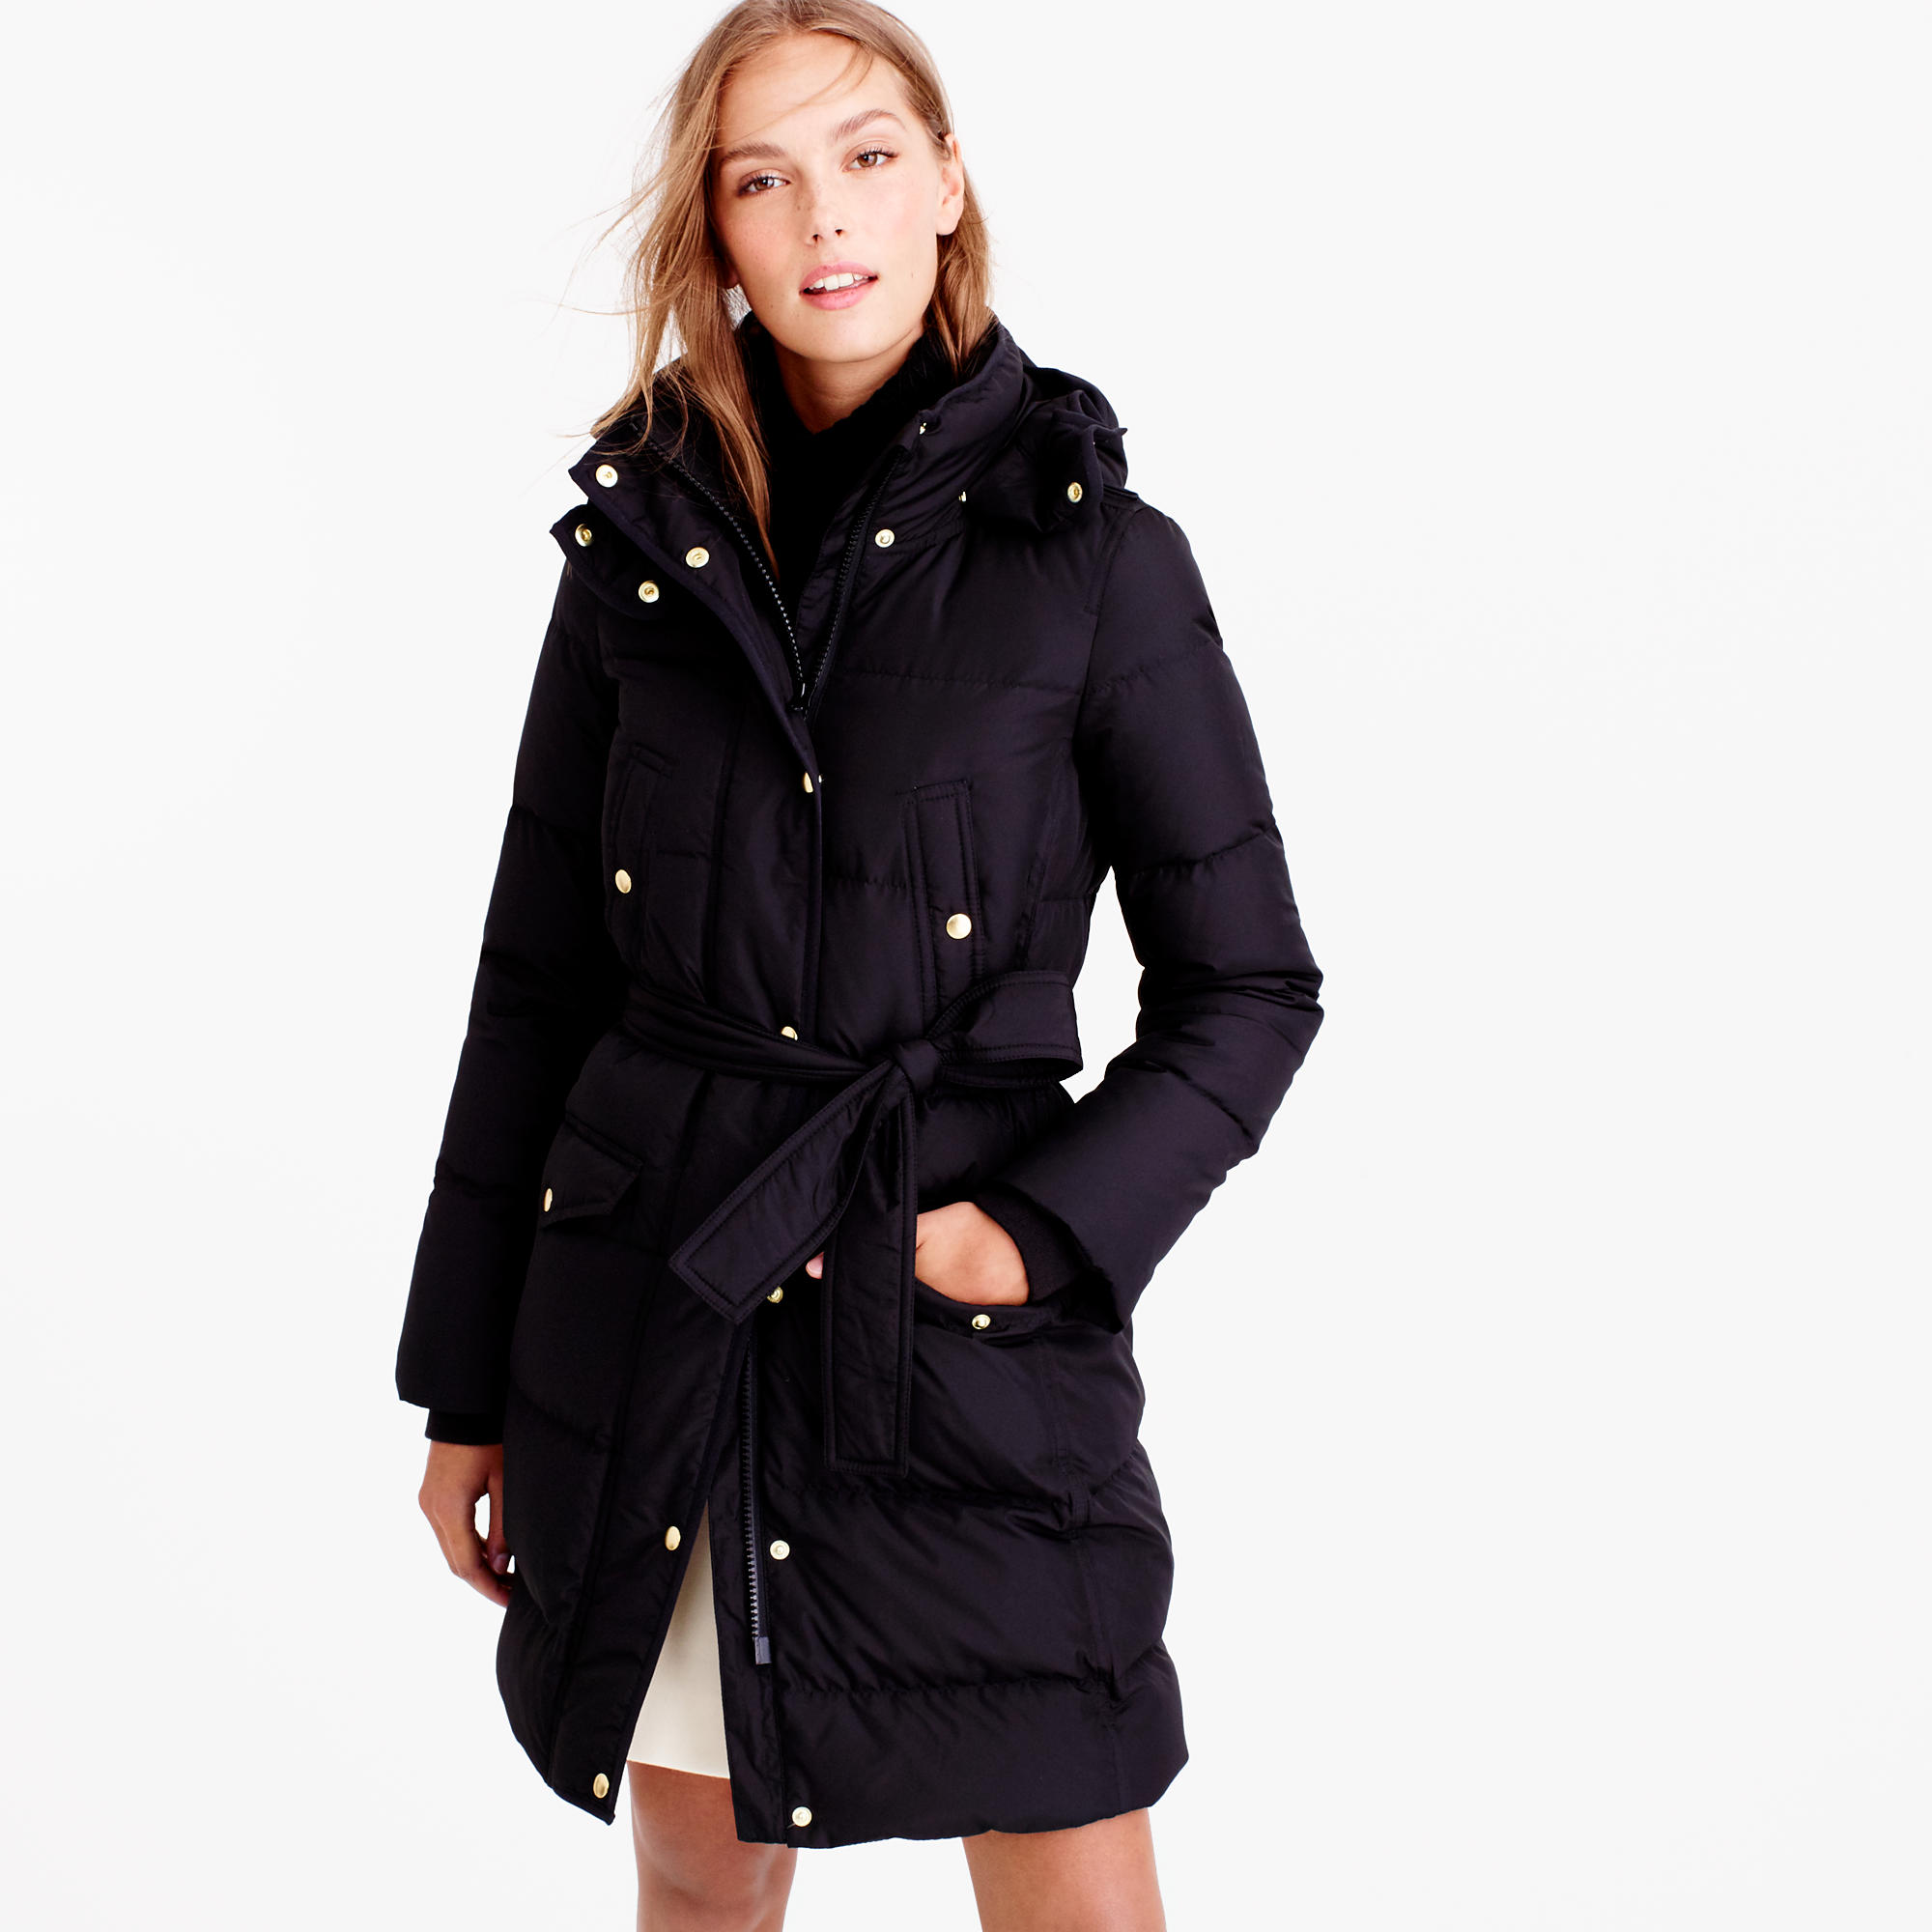 Petite Wintress Belted Puffer Coat : Women's Coats & Jackets | J.Crew